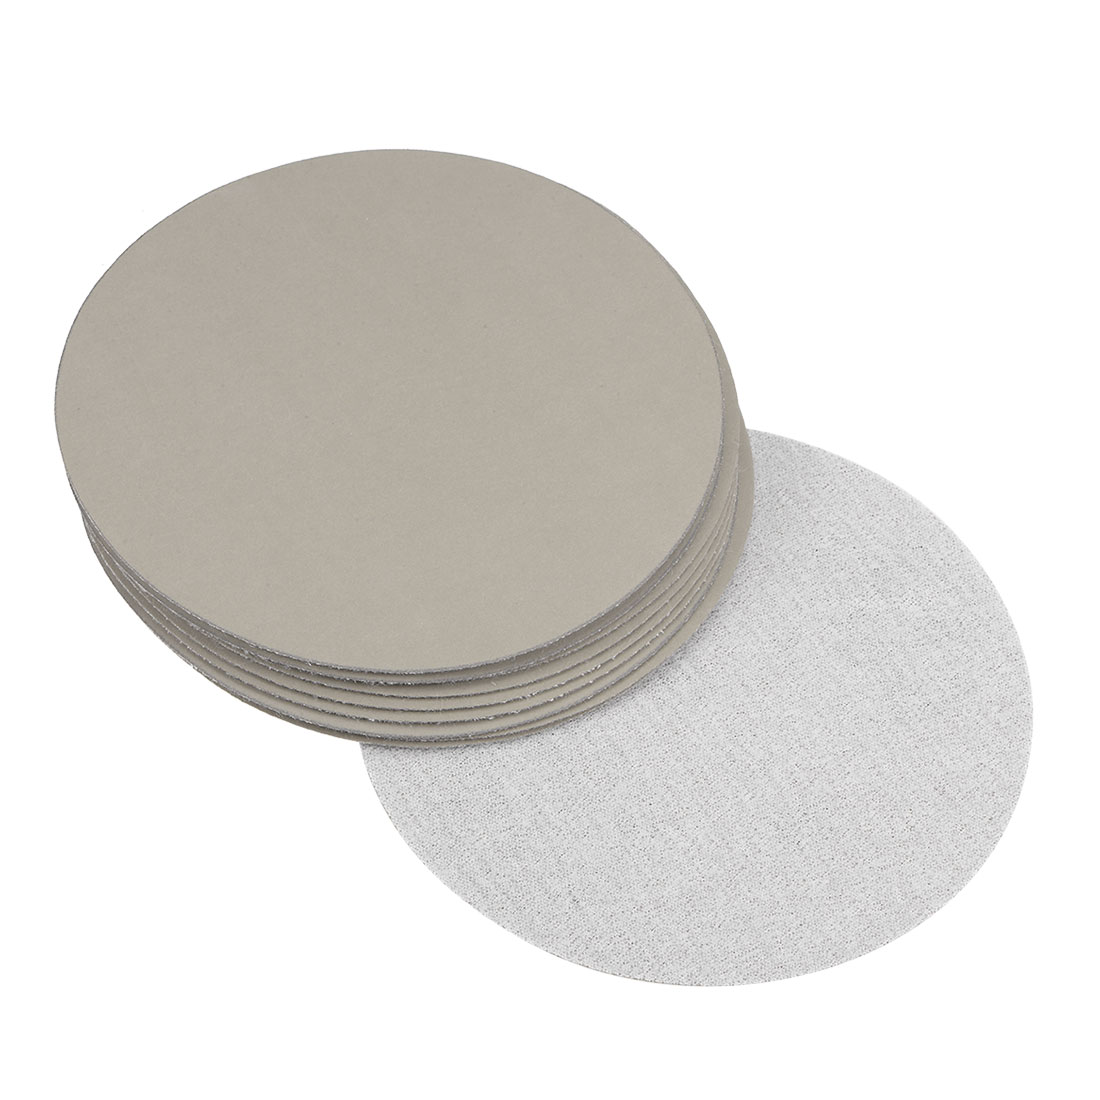 5 inch Wet Dry Discs 5000 Grit Hook and Loop Sanding Disc Silicon Carbide 10pcs